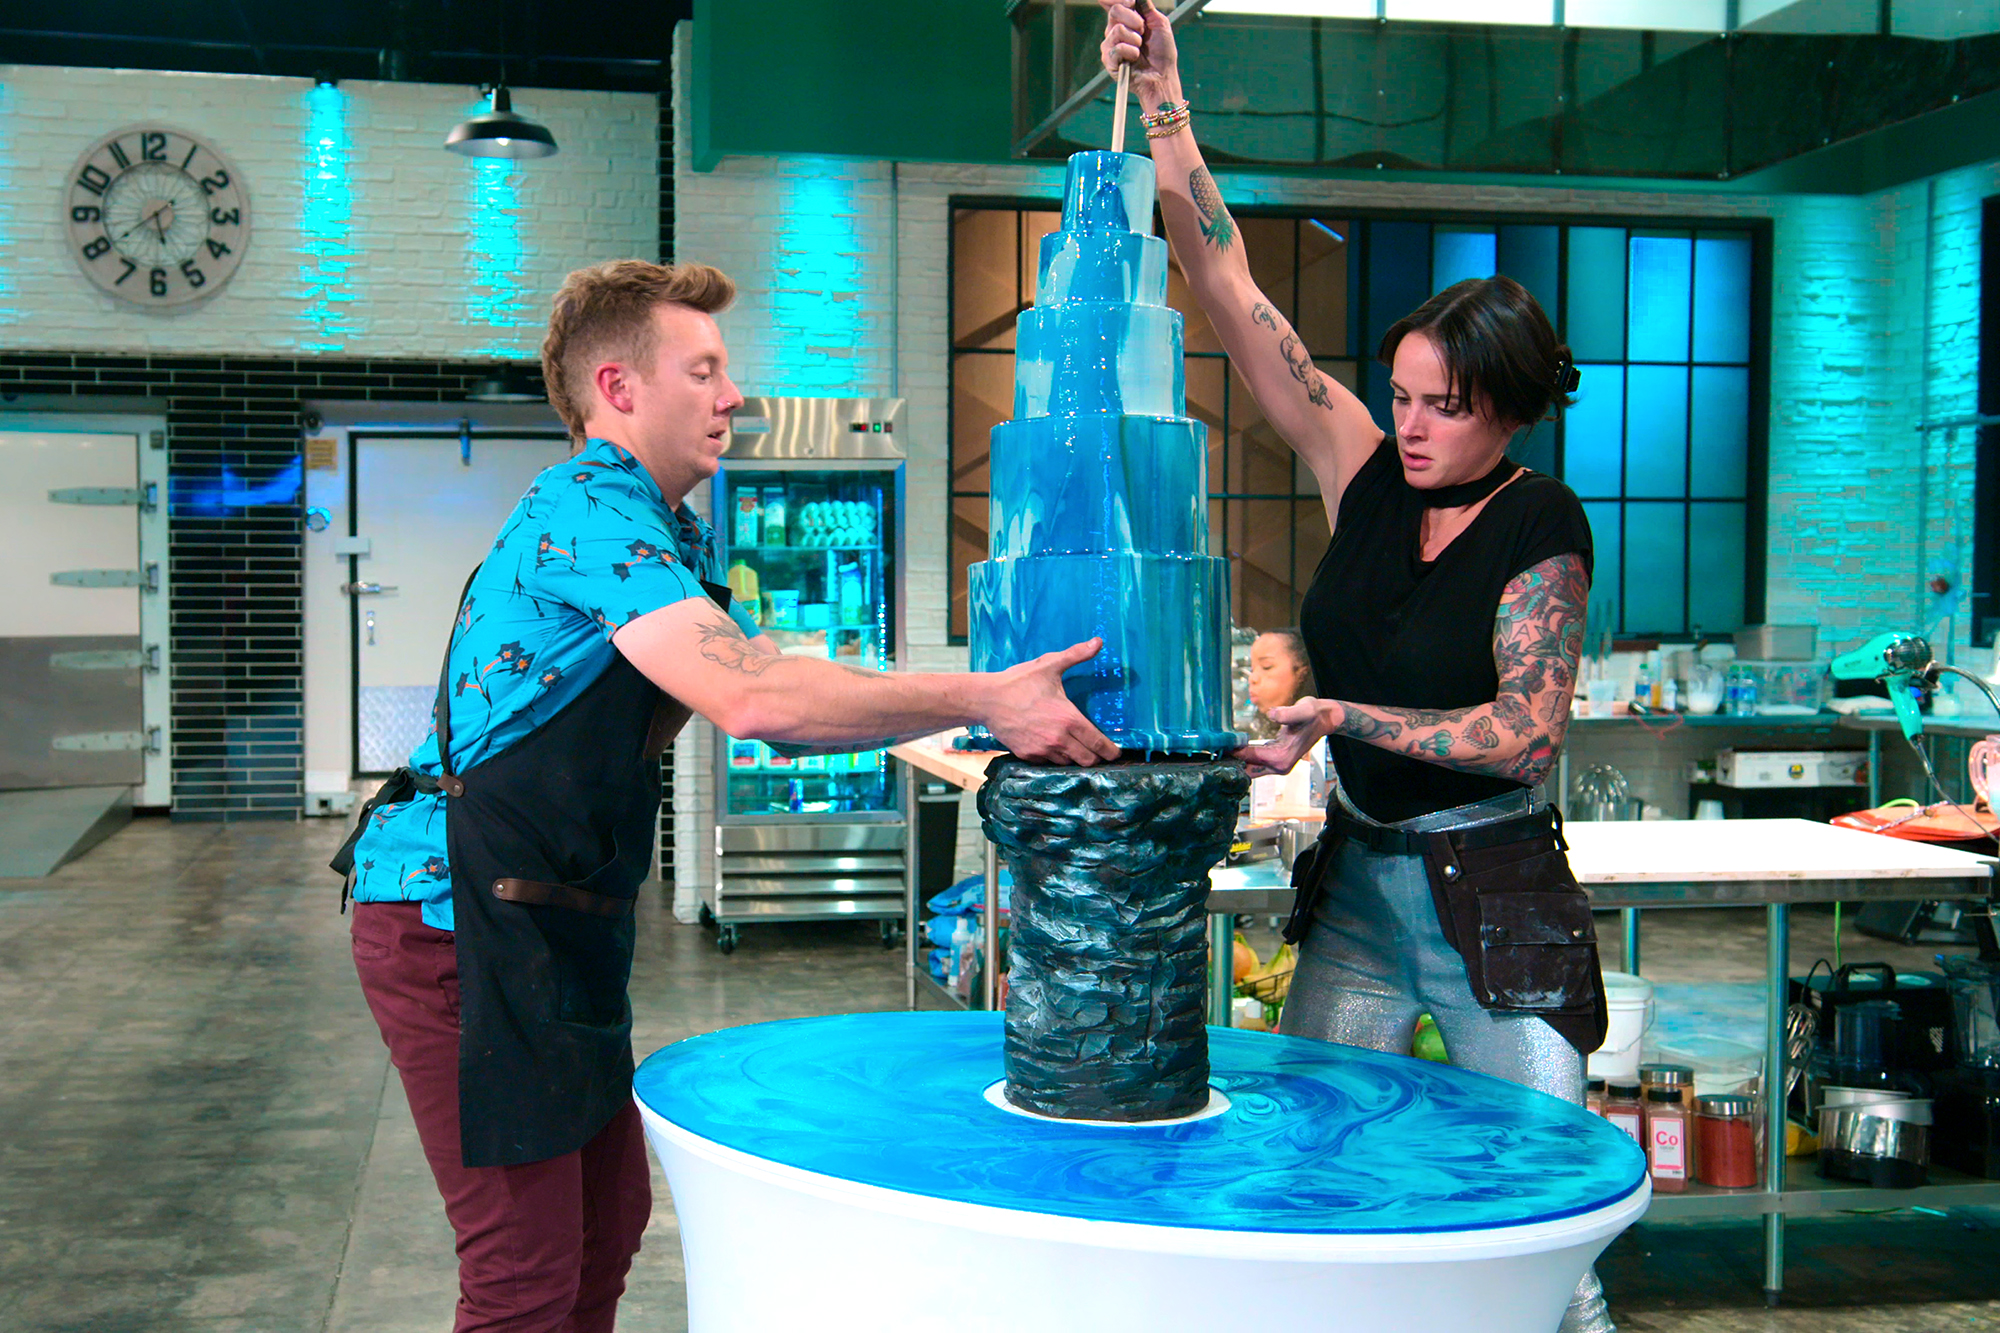 two people in an industrial kitchen working on a large 5 layer cake dripping in blue